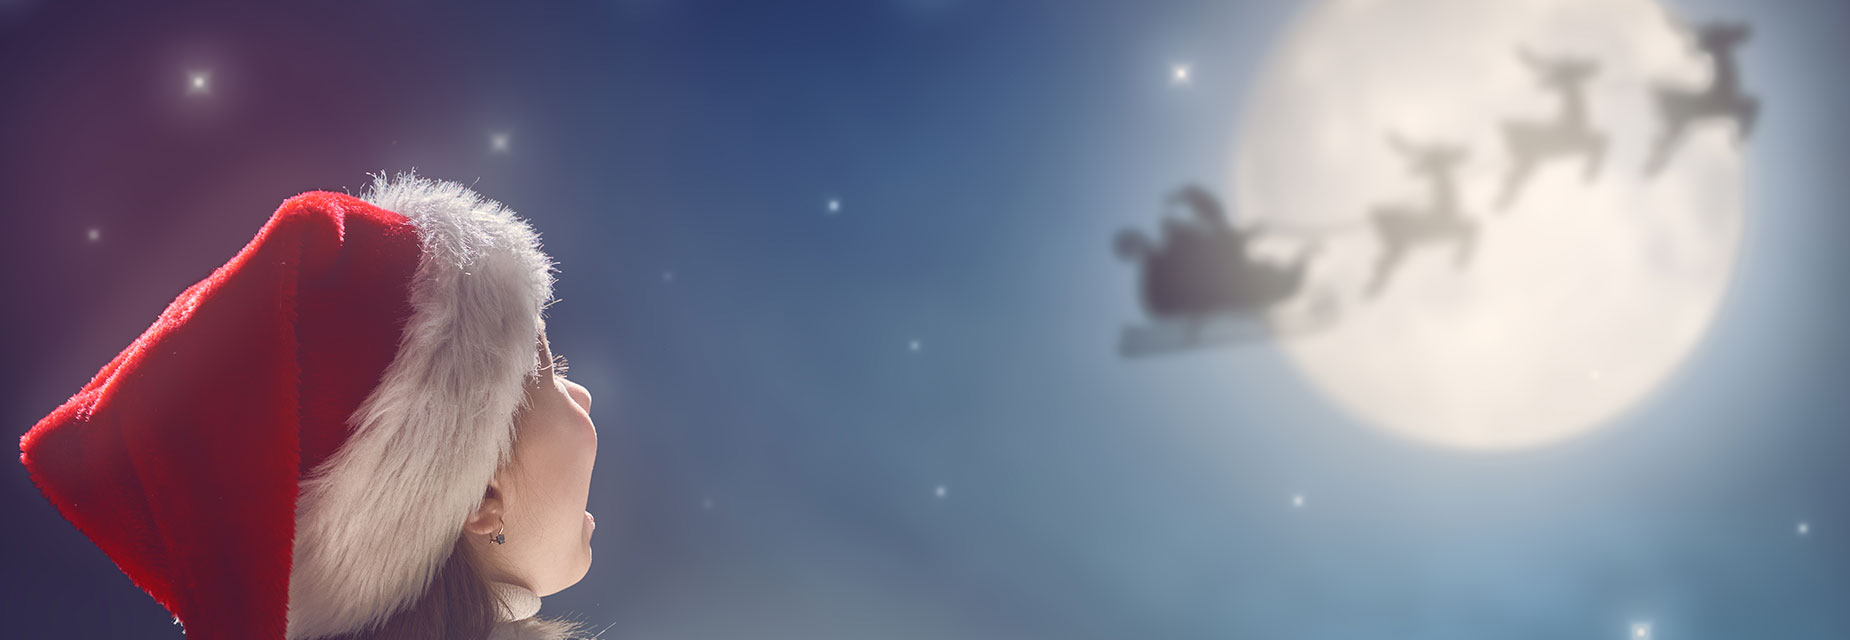 A young girl looks into the sky at a silhouette of Santa's sleigh against the moon